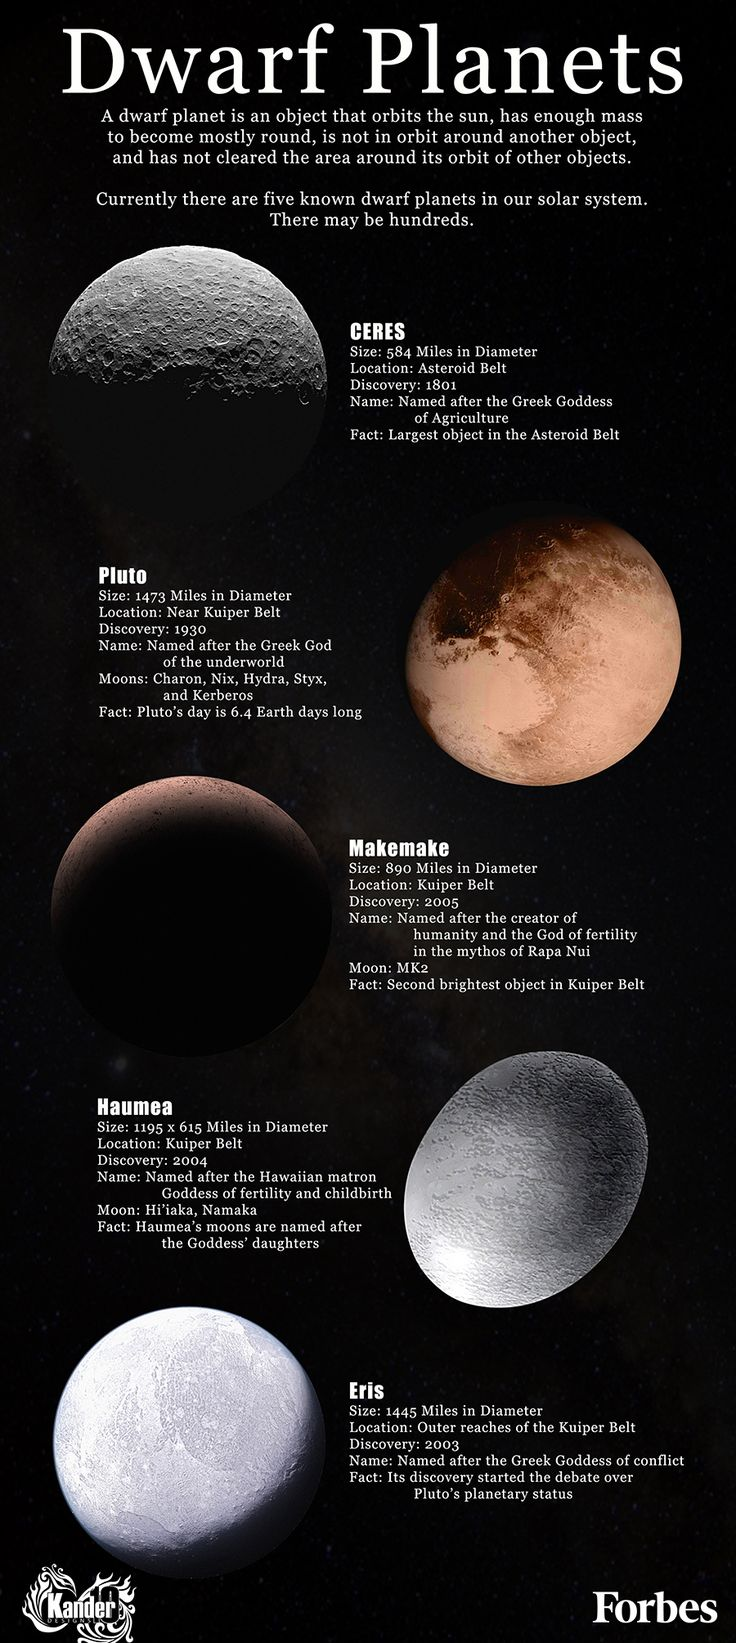 A dwarf planet is an object that orbits the sun, has enough mass to become mostly round, is not in orbit around another object, and has not cleared the area around its orbit of other objects. Currently there are five known dwarf planets in our solar system. There may be hundreds...